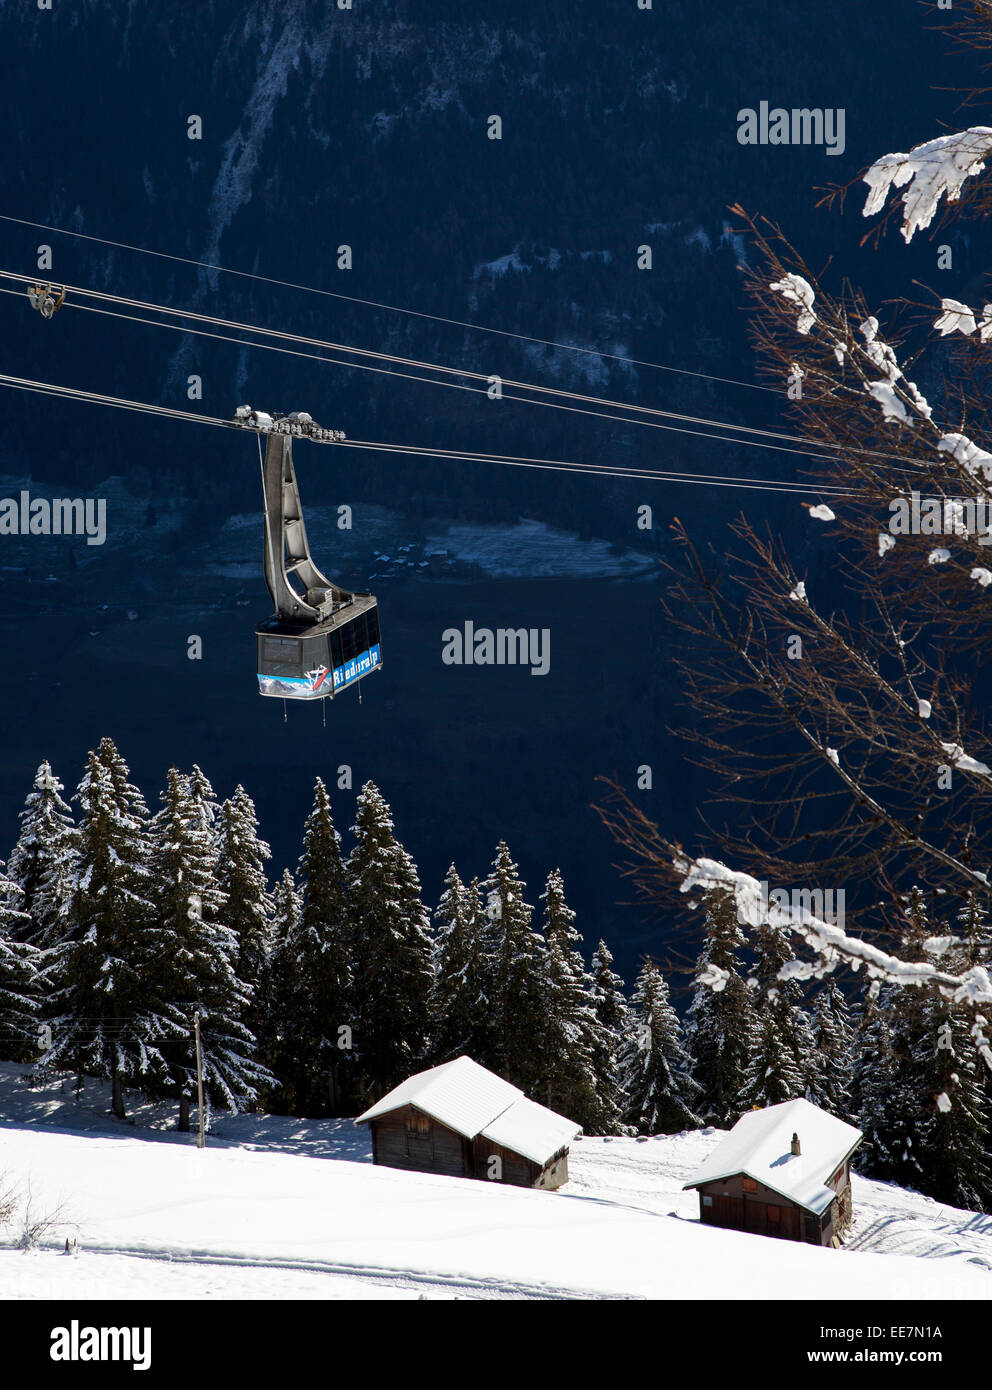 Gondola lift and view over the mountains in the snow in winter in the Swiss Alps at Riederalp, Wallis / Valais, - Stock Image